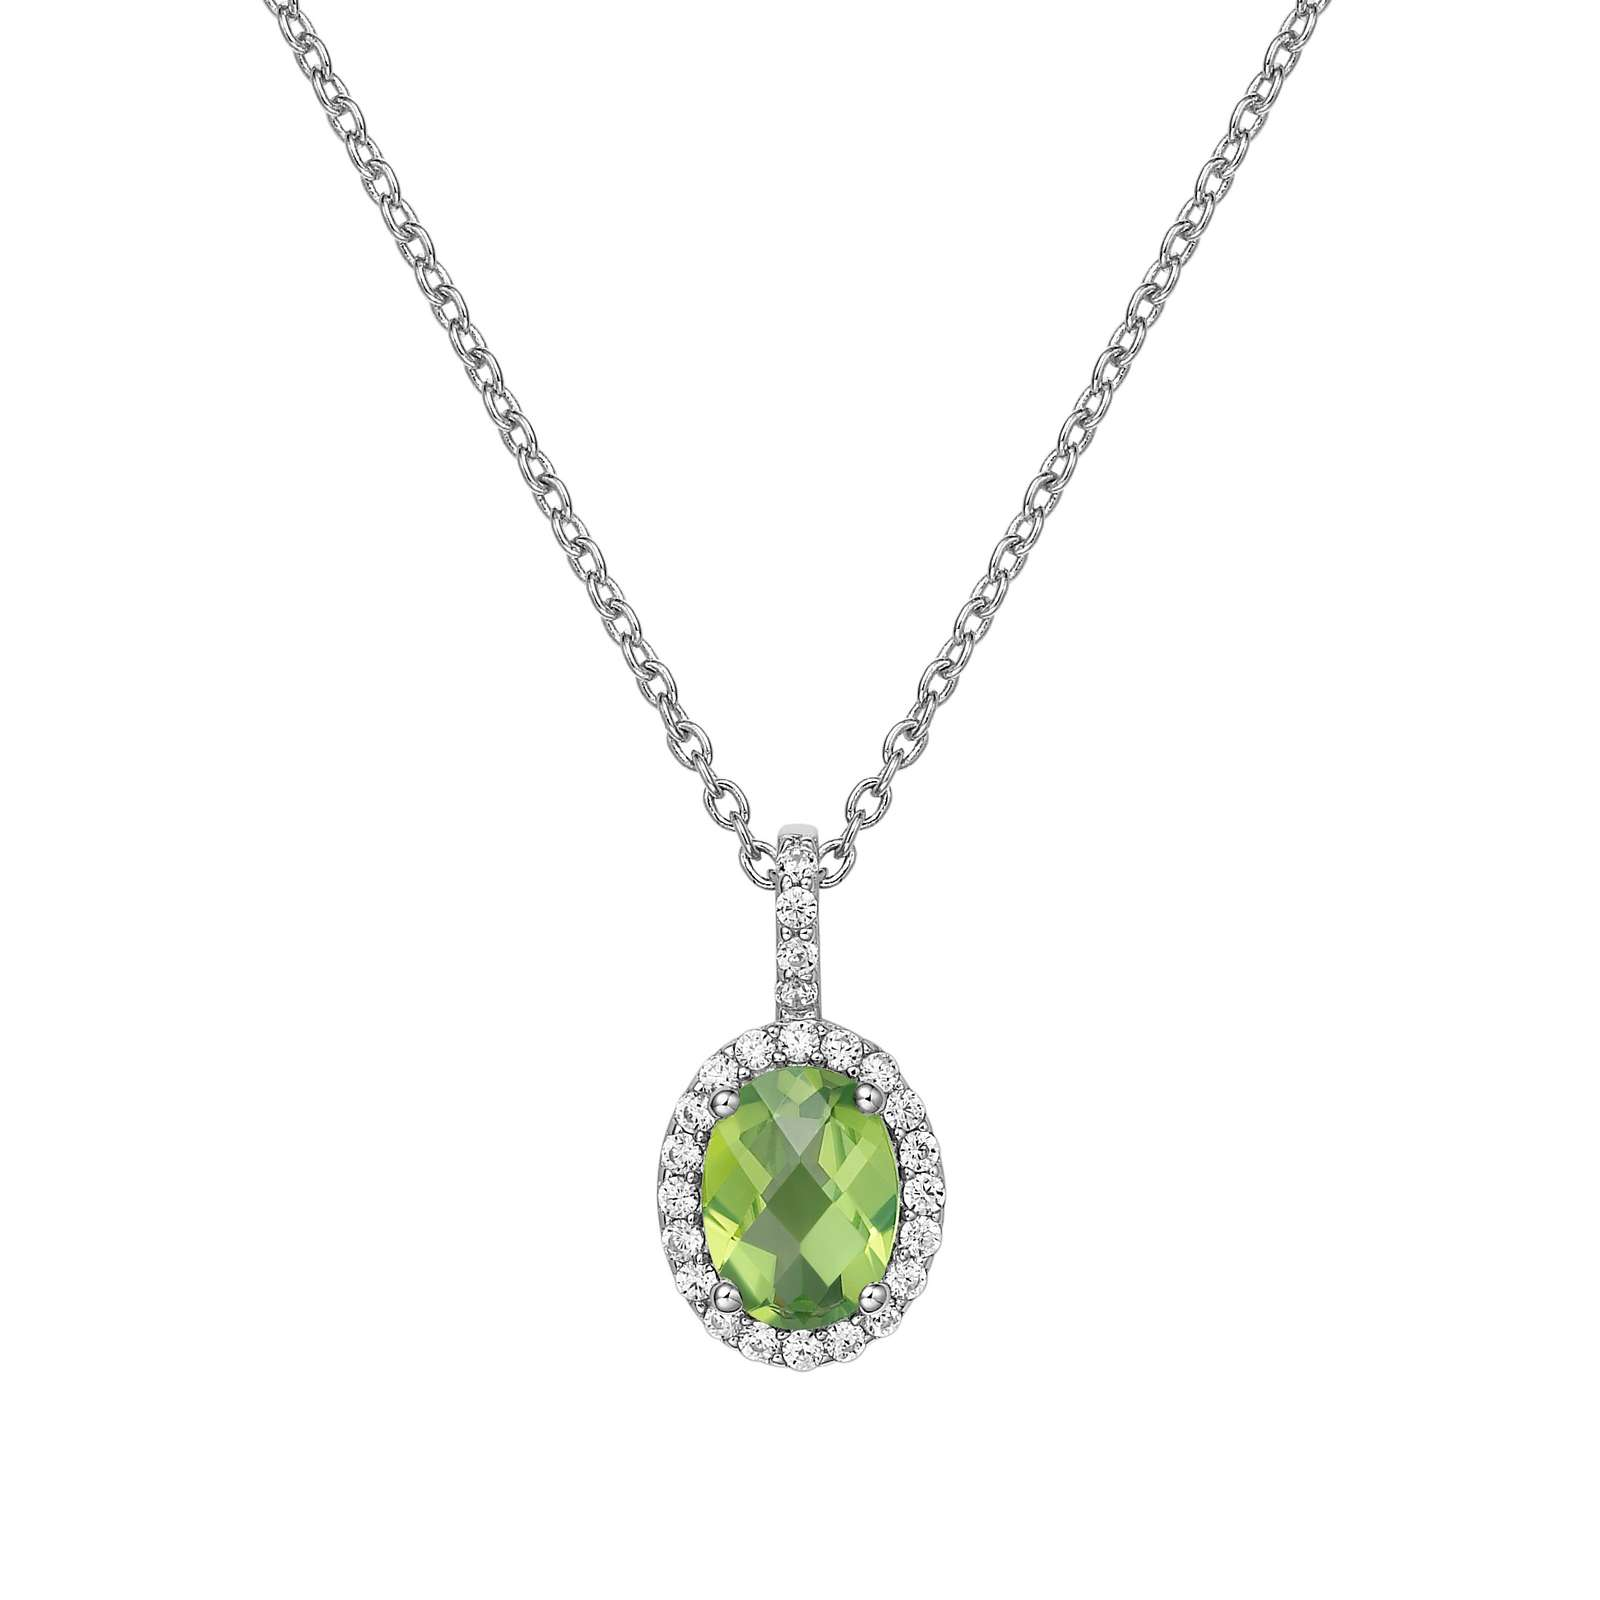 Aria Necklace - The classic look of Lafonn's Aria pendant adds elegance to any ensemble. The pendant is set with a genuine oval checkerboard-cut peridot surrounded by Lafonn's signature Lassaire simulated diamonds in sterling silver bonded with platinum. The pendant comes on an adjustable 18